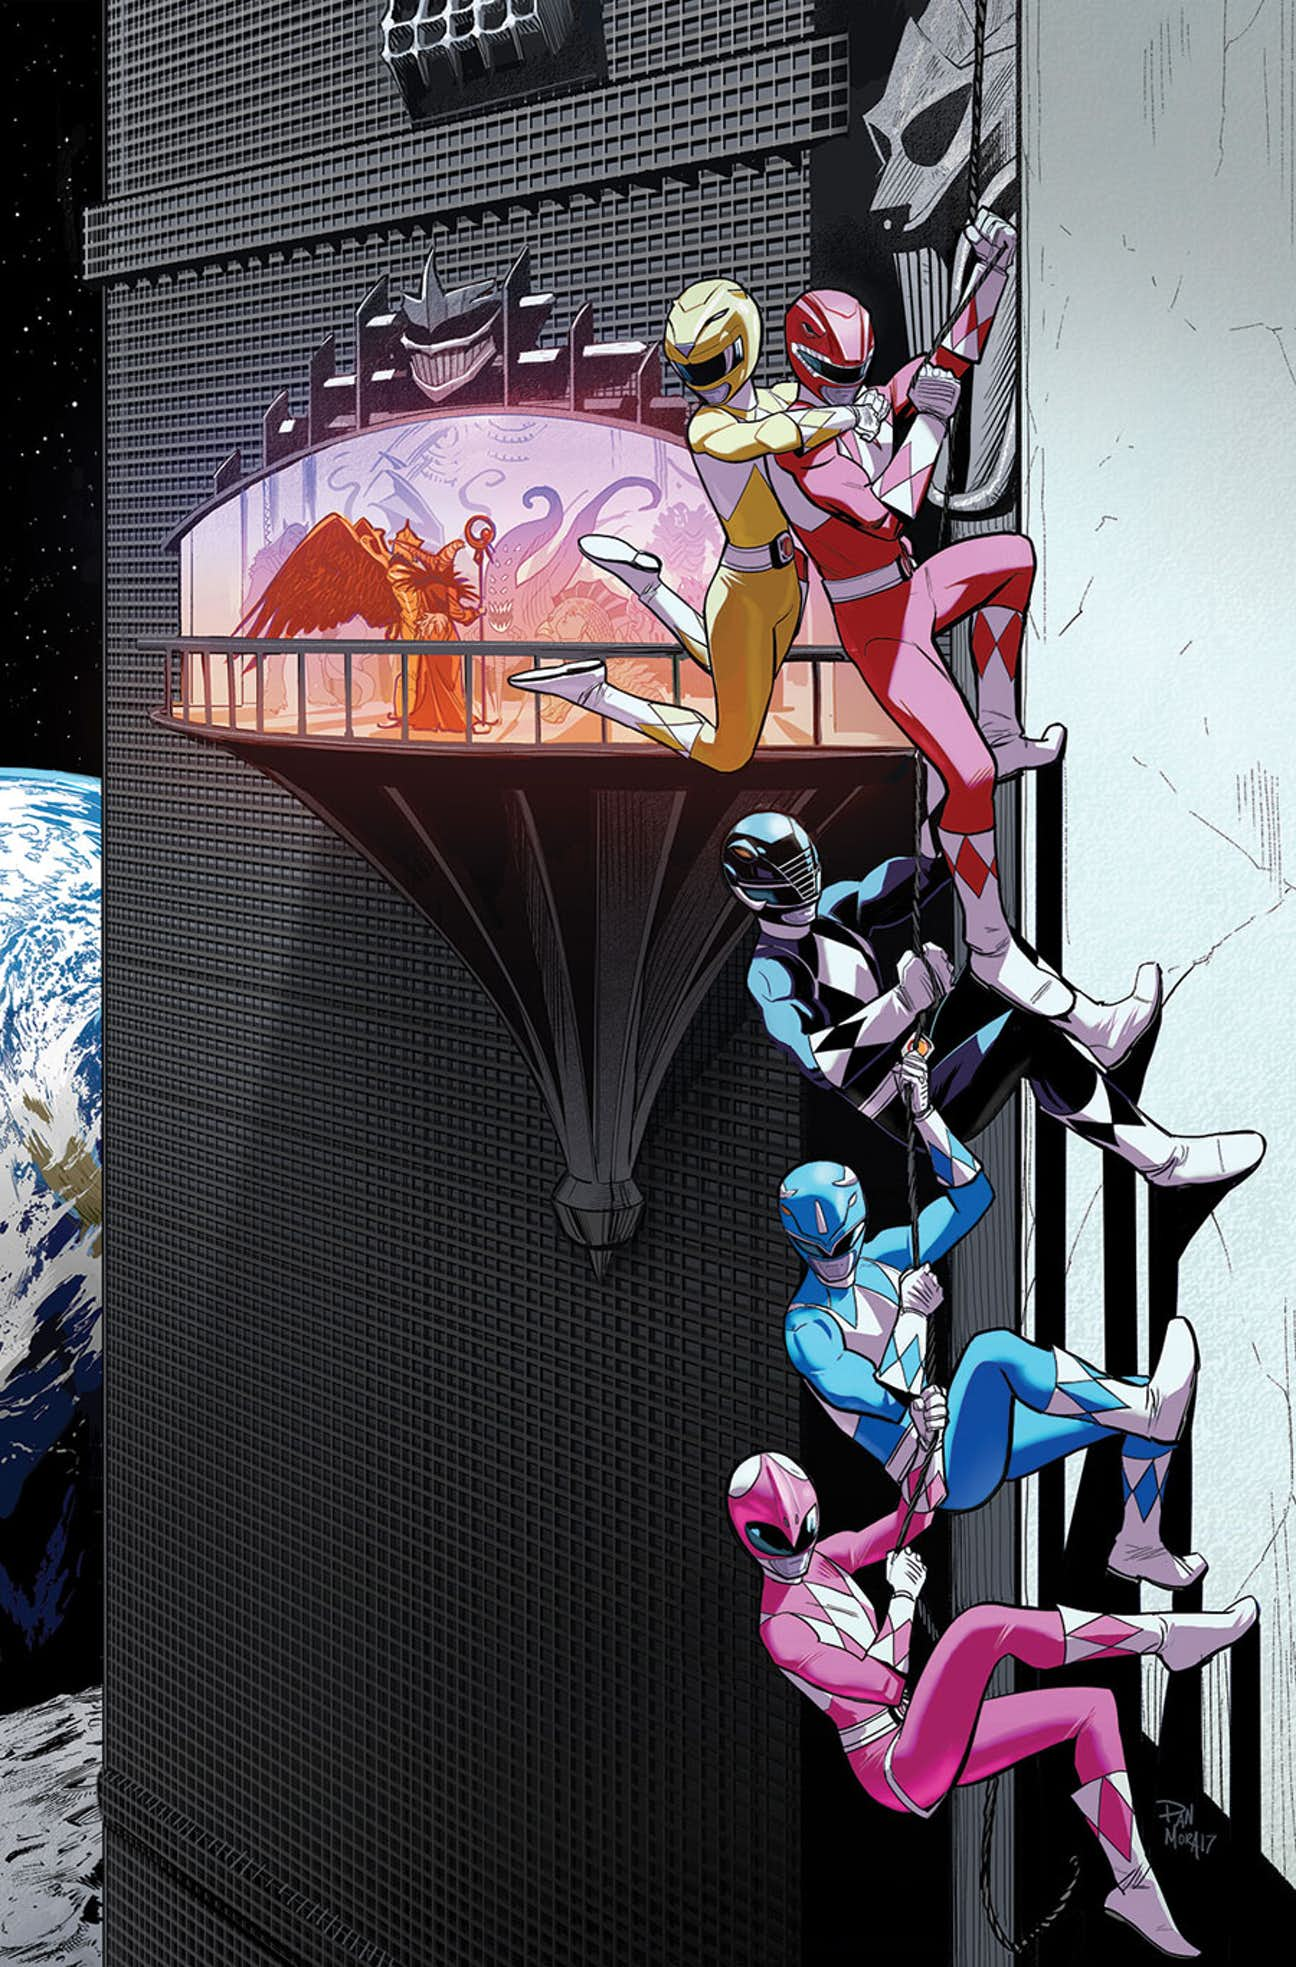 Go To Www Bing Comhella Www Bing Com: Go Go Power Rangers Issue 6 Covers And Synopsis